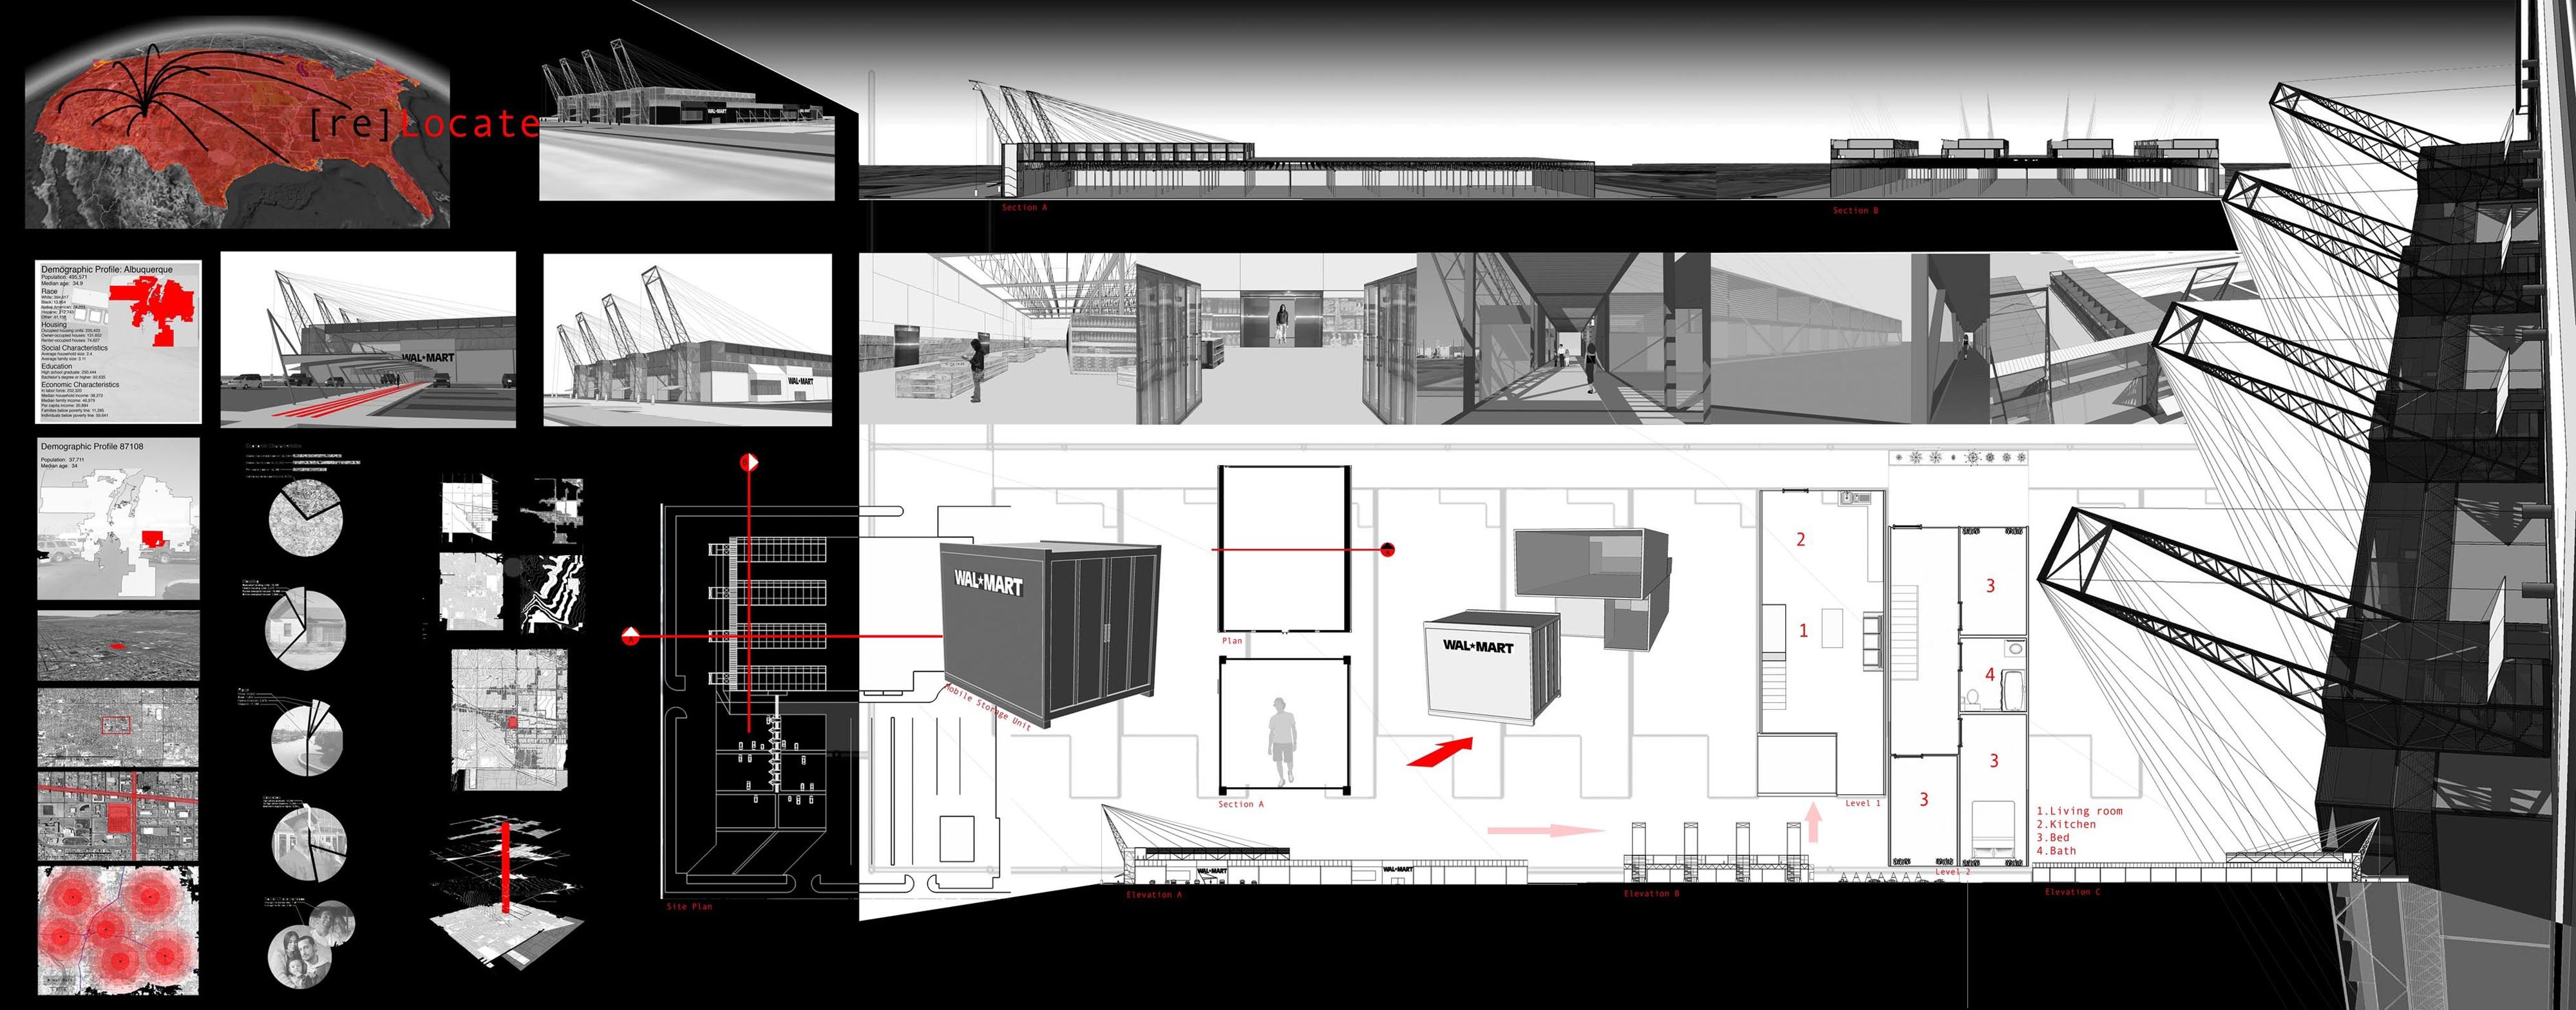 Architectural Presentation Board Interior Design PresentationProject PresentationPresentation LayoutPresentation